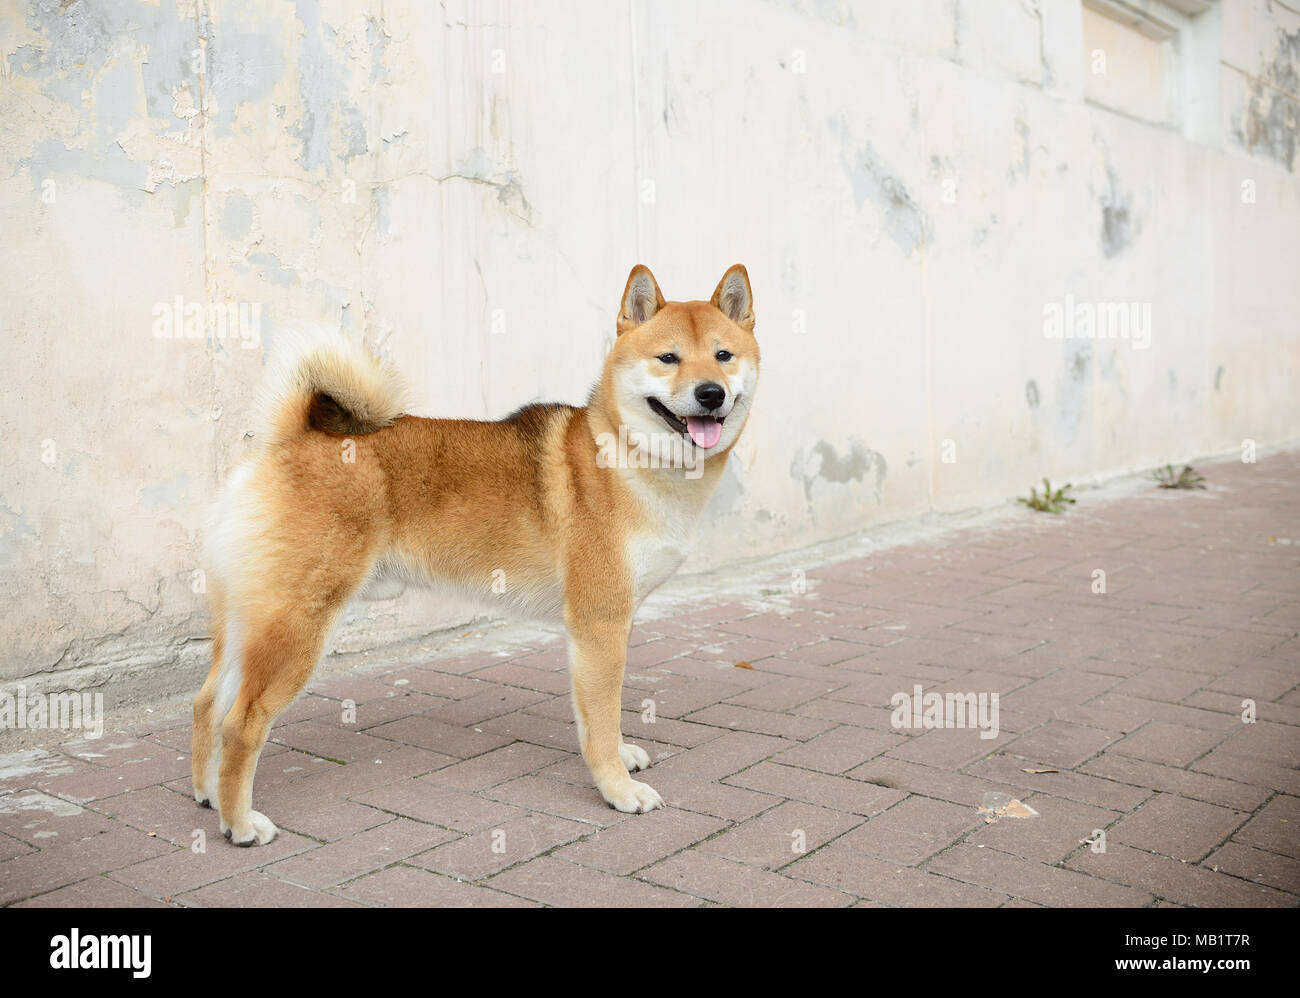 Shiba Inu in full lenght - Stock Image